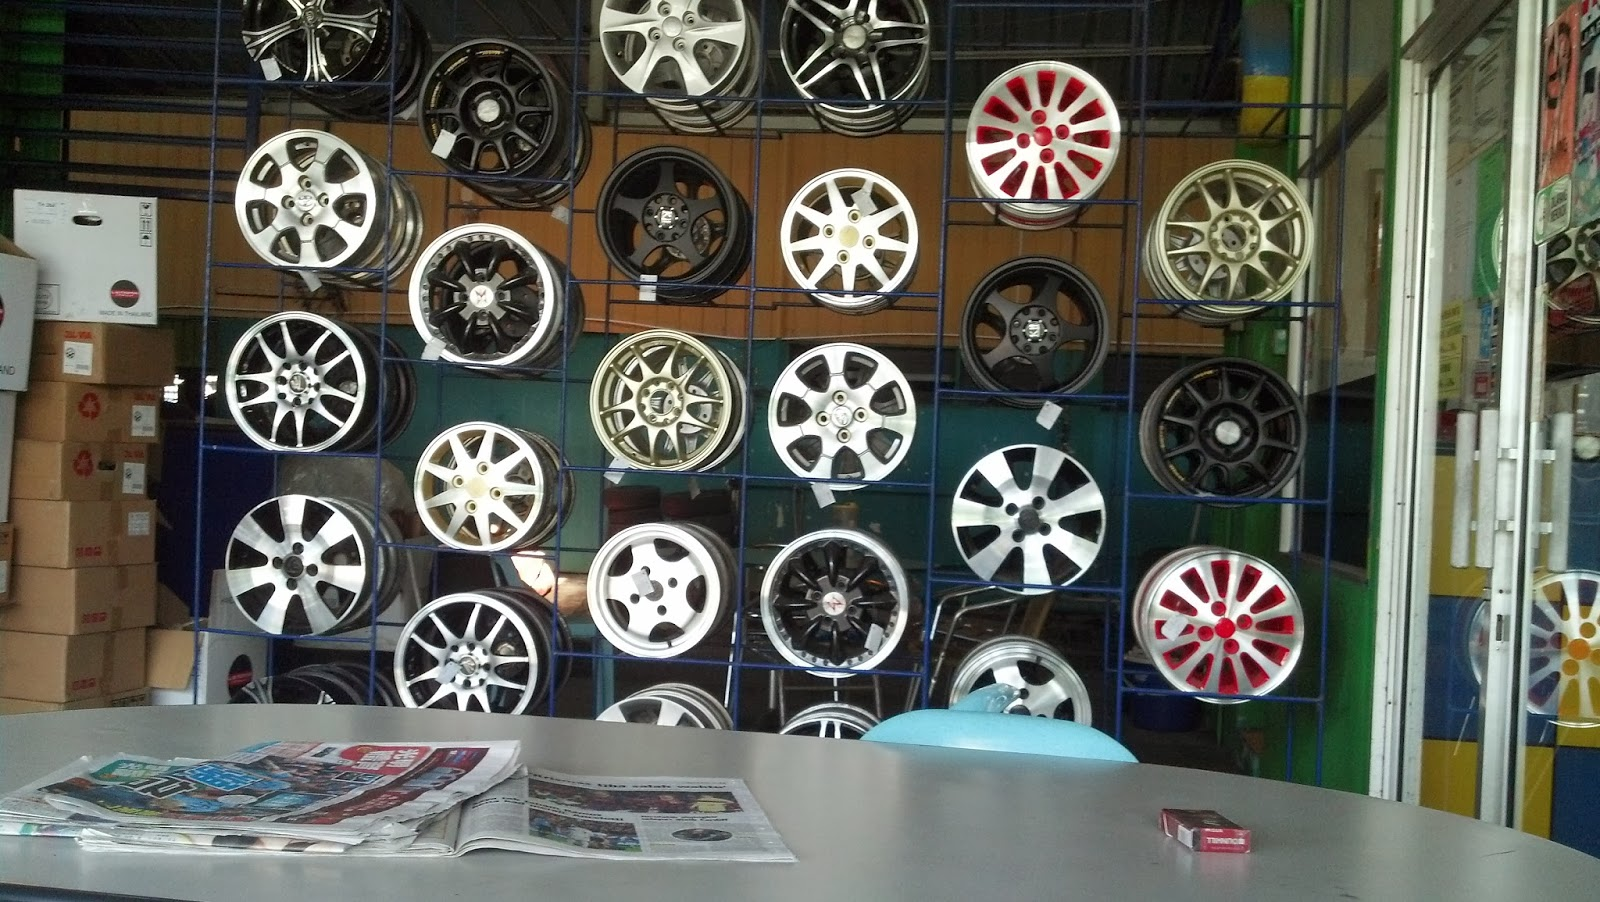 sport rim murah,harga alignment,alignment tayar kereta,tayar dan alignment